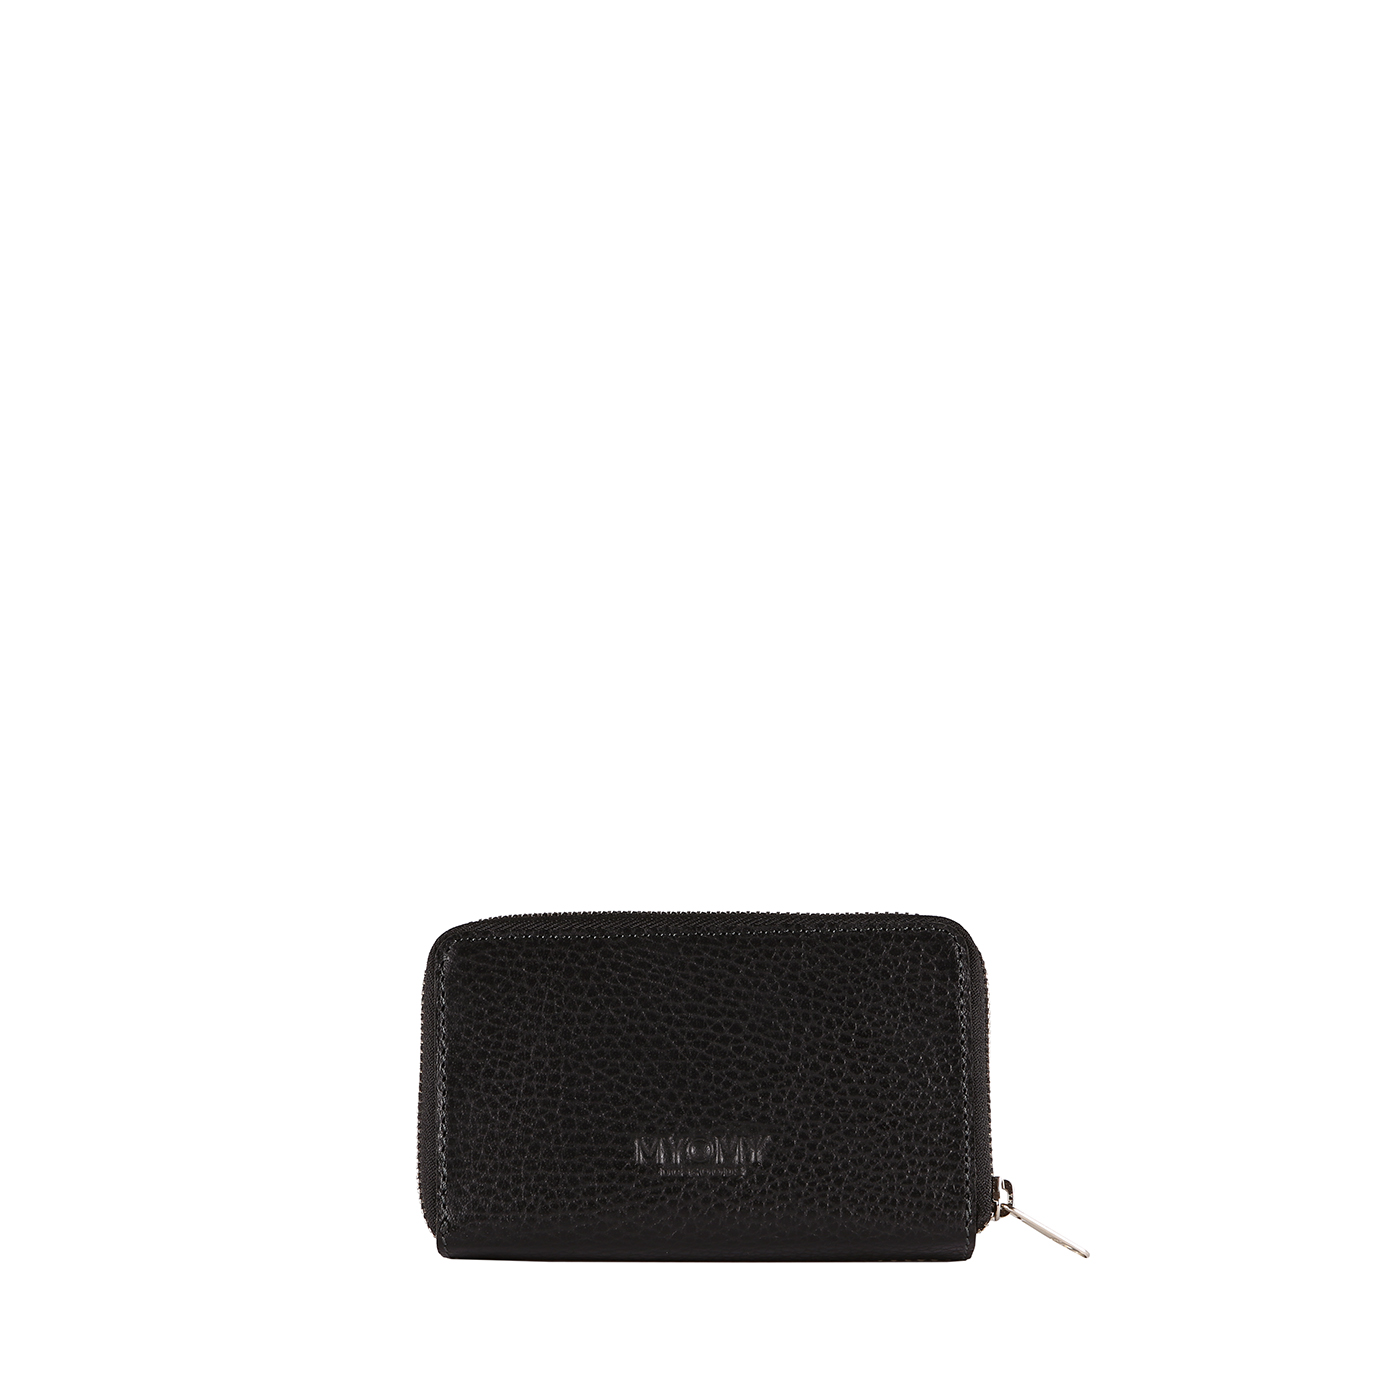 MY CARRY BAG Wallet Medium (RFID) - rambler black